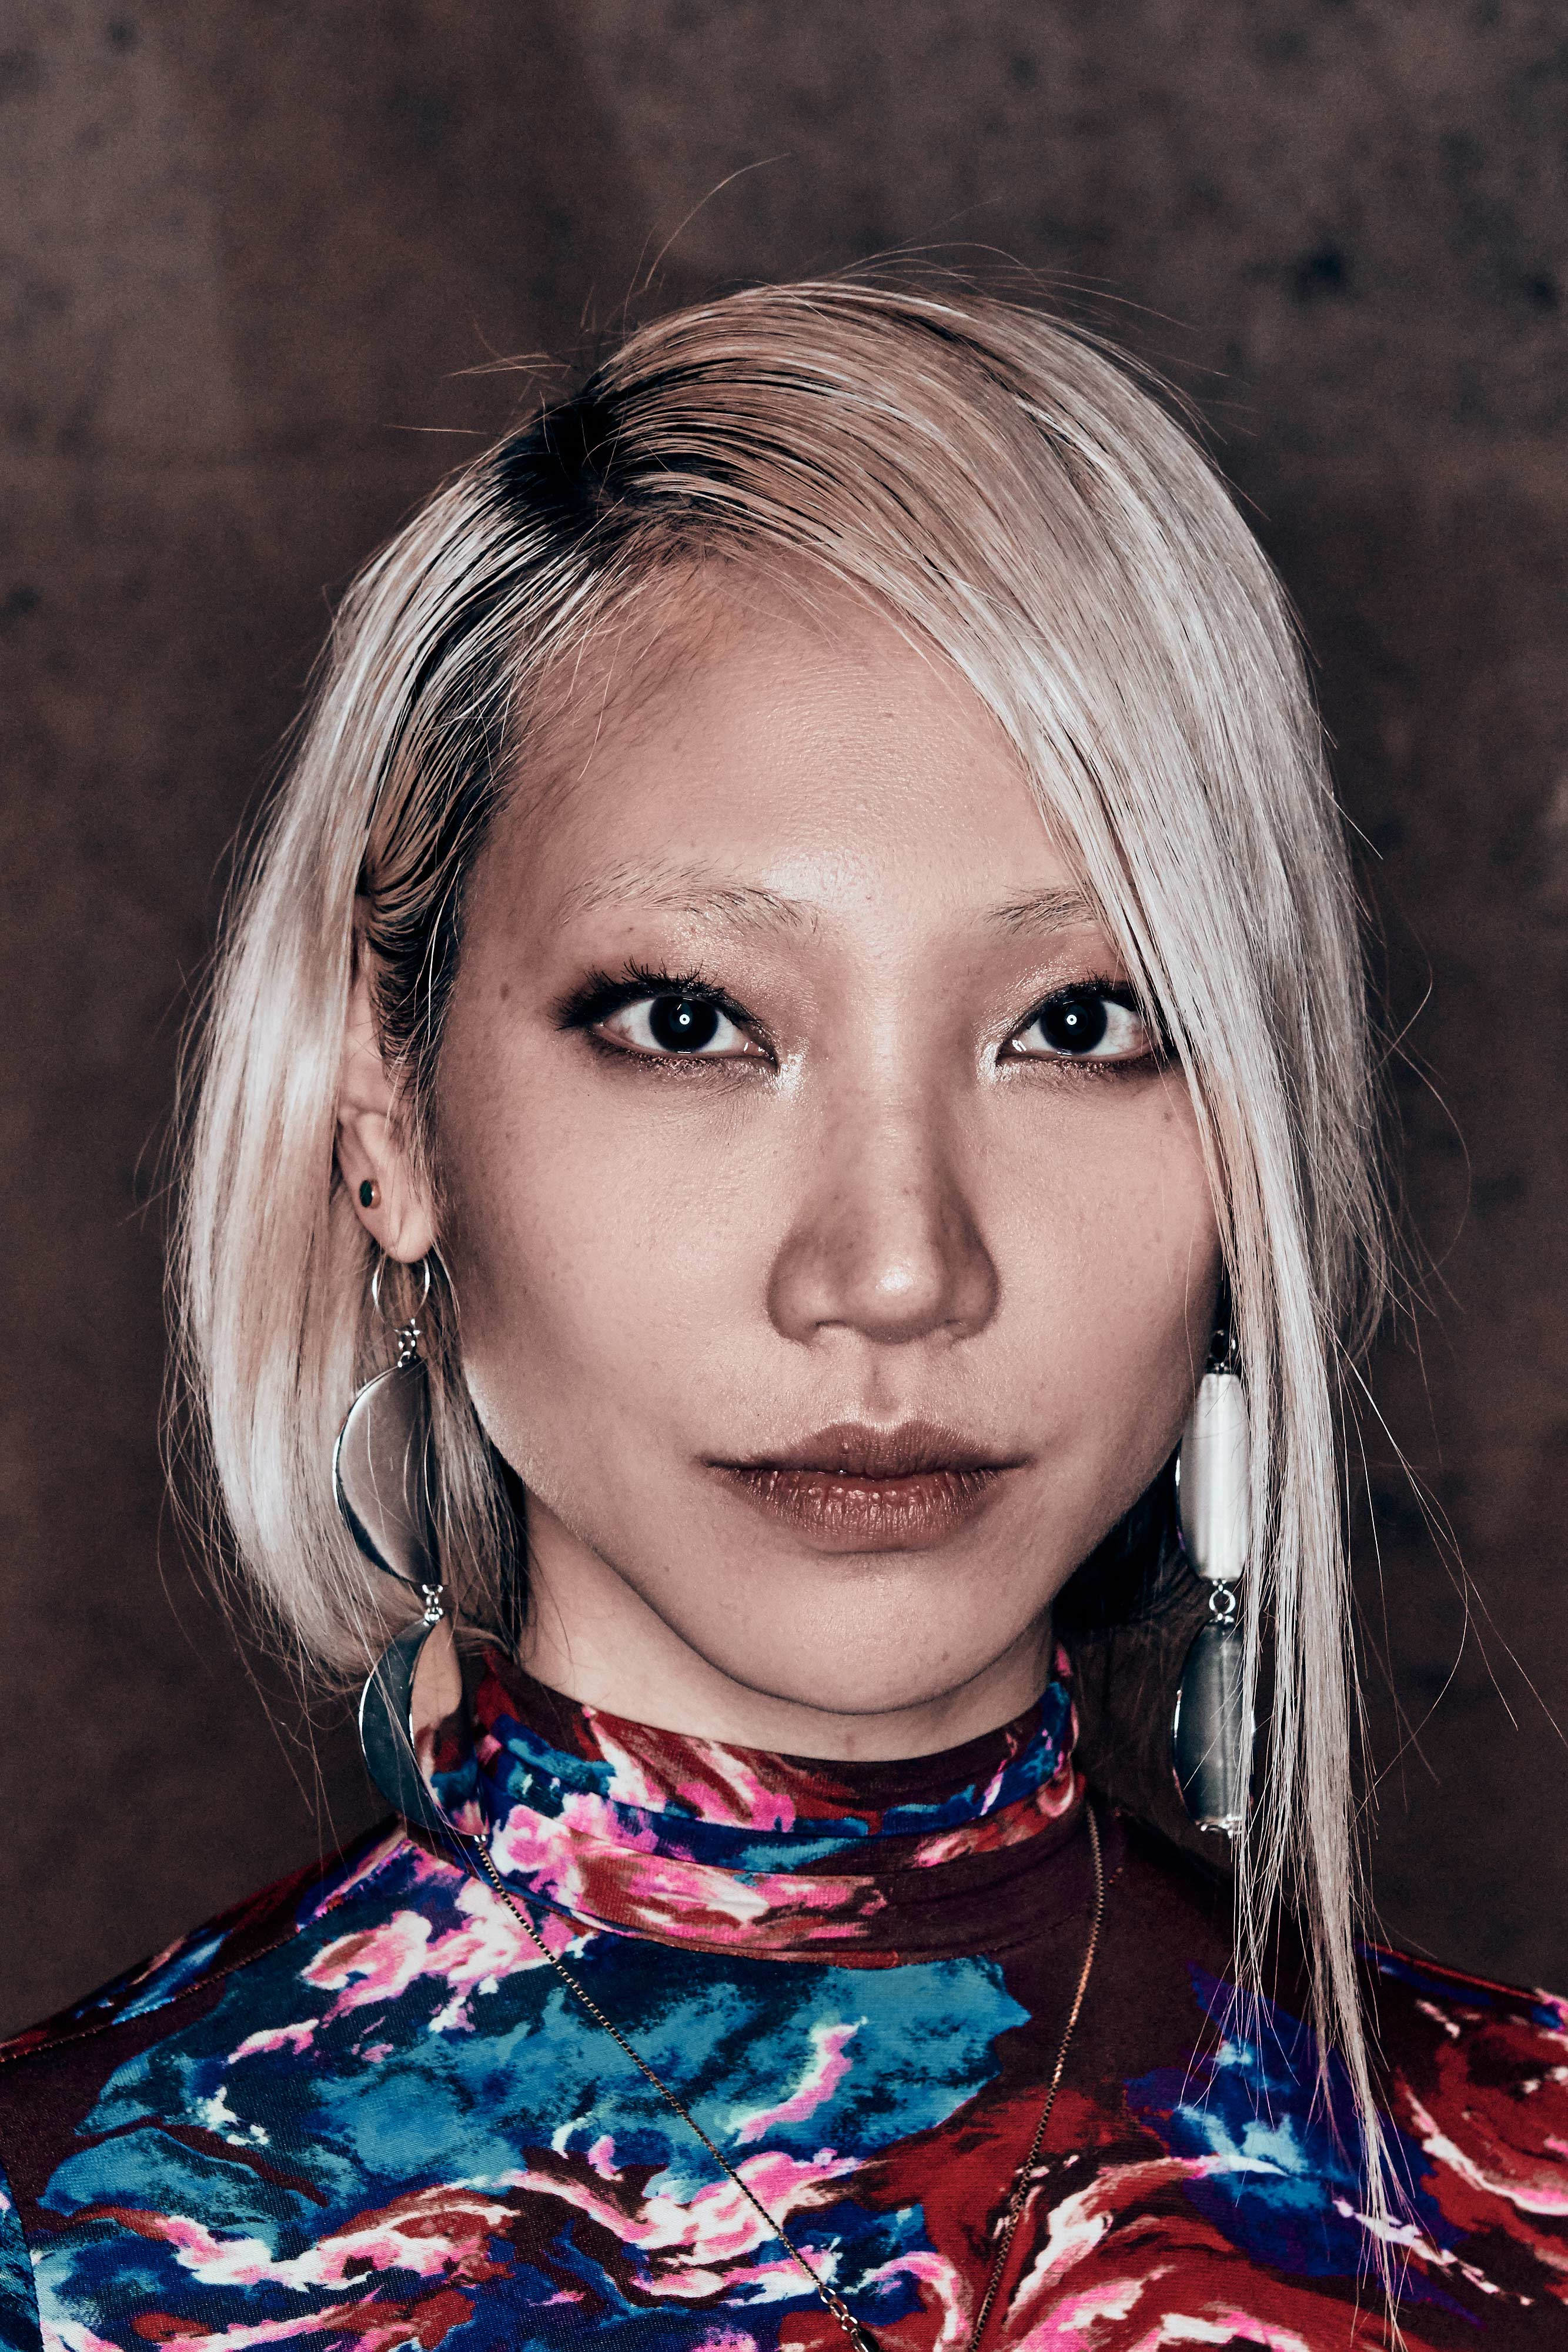 The 31-year old daughter of father (?) and mother(?) Soo Joo Park in 2020 photo. Soo Joo Park earned a  million dollar salary - leaving the net worth at 3 million in 2020